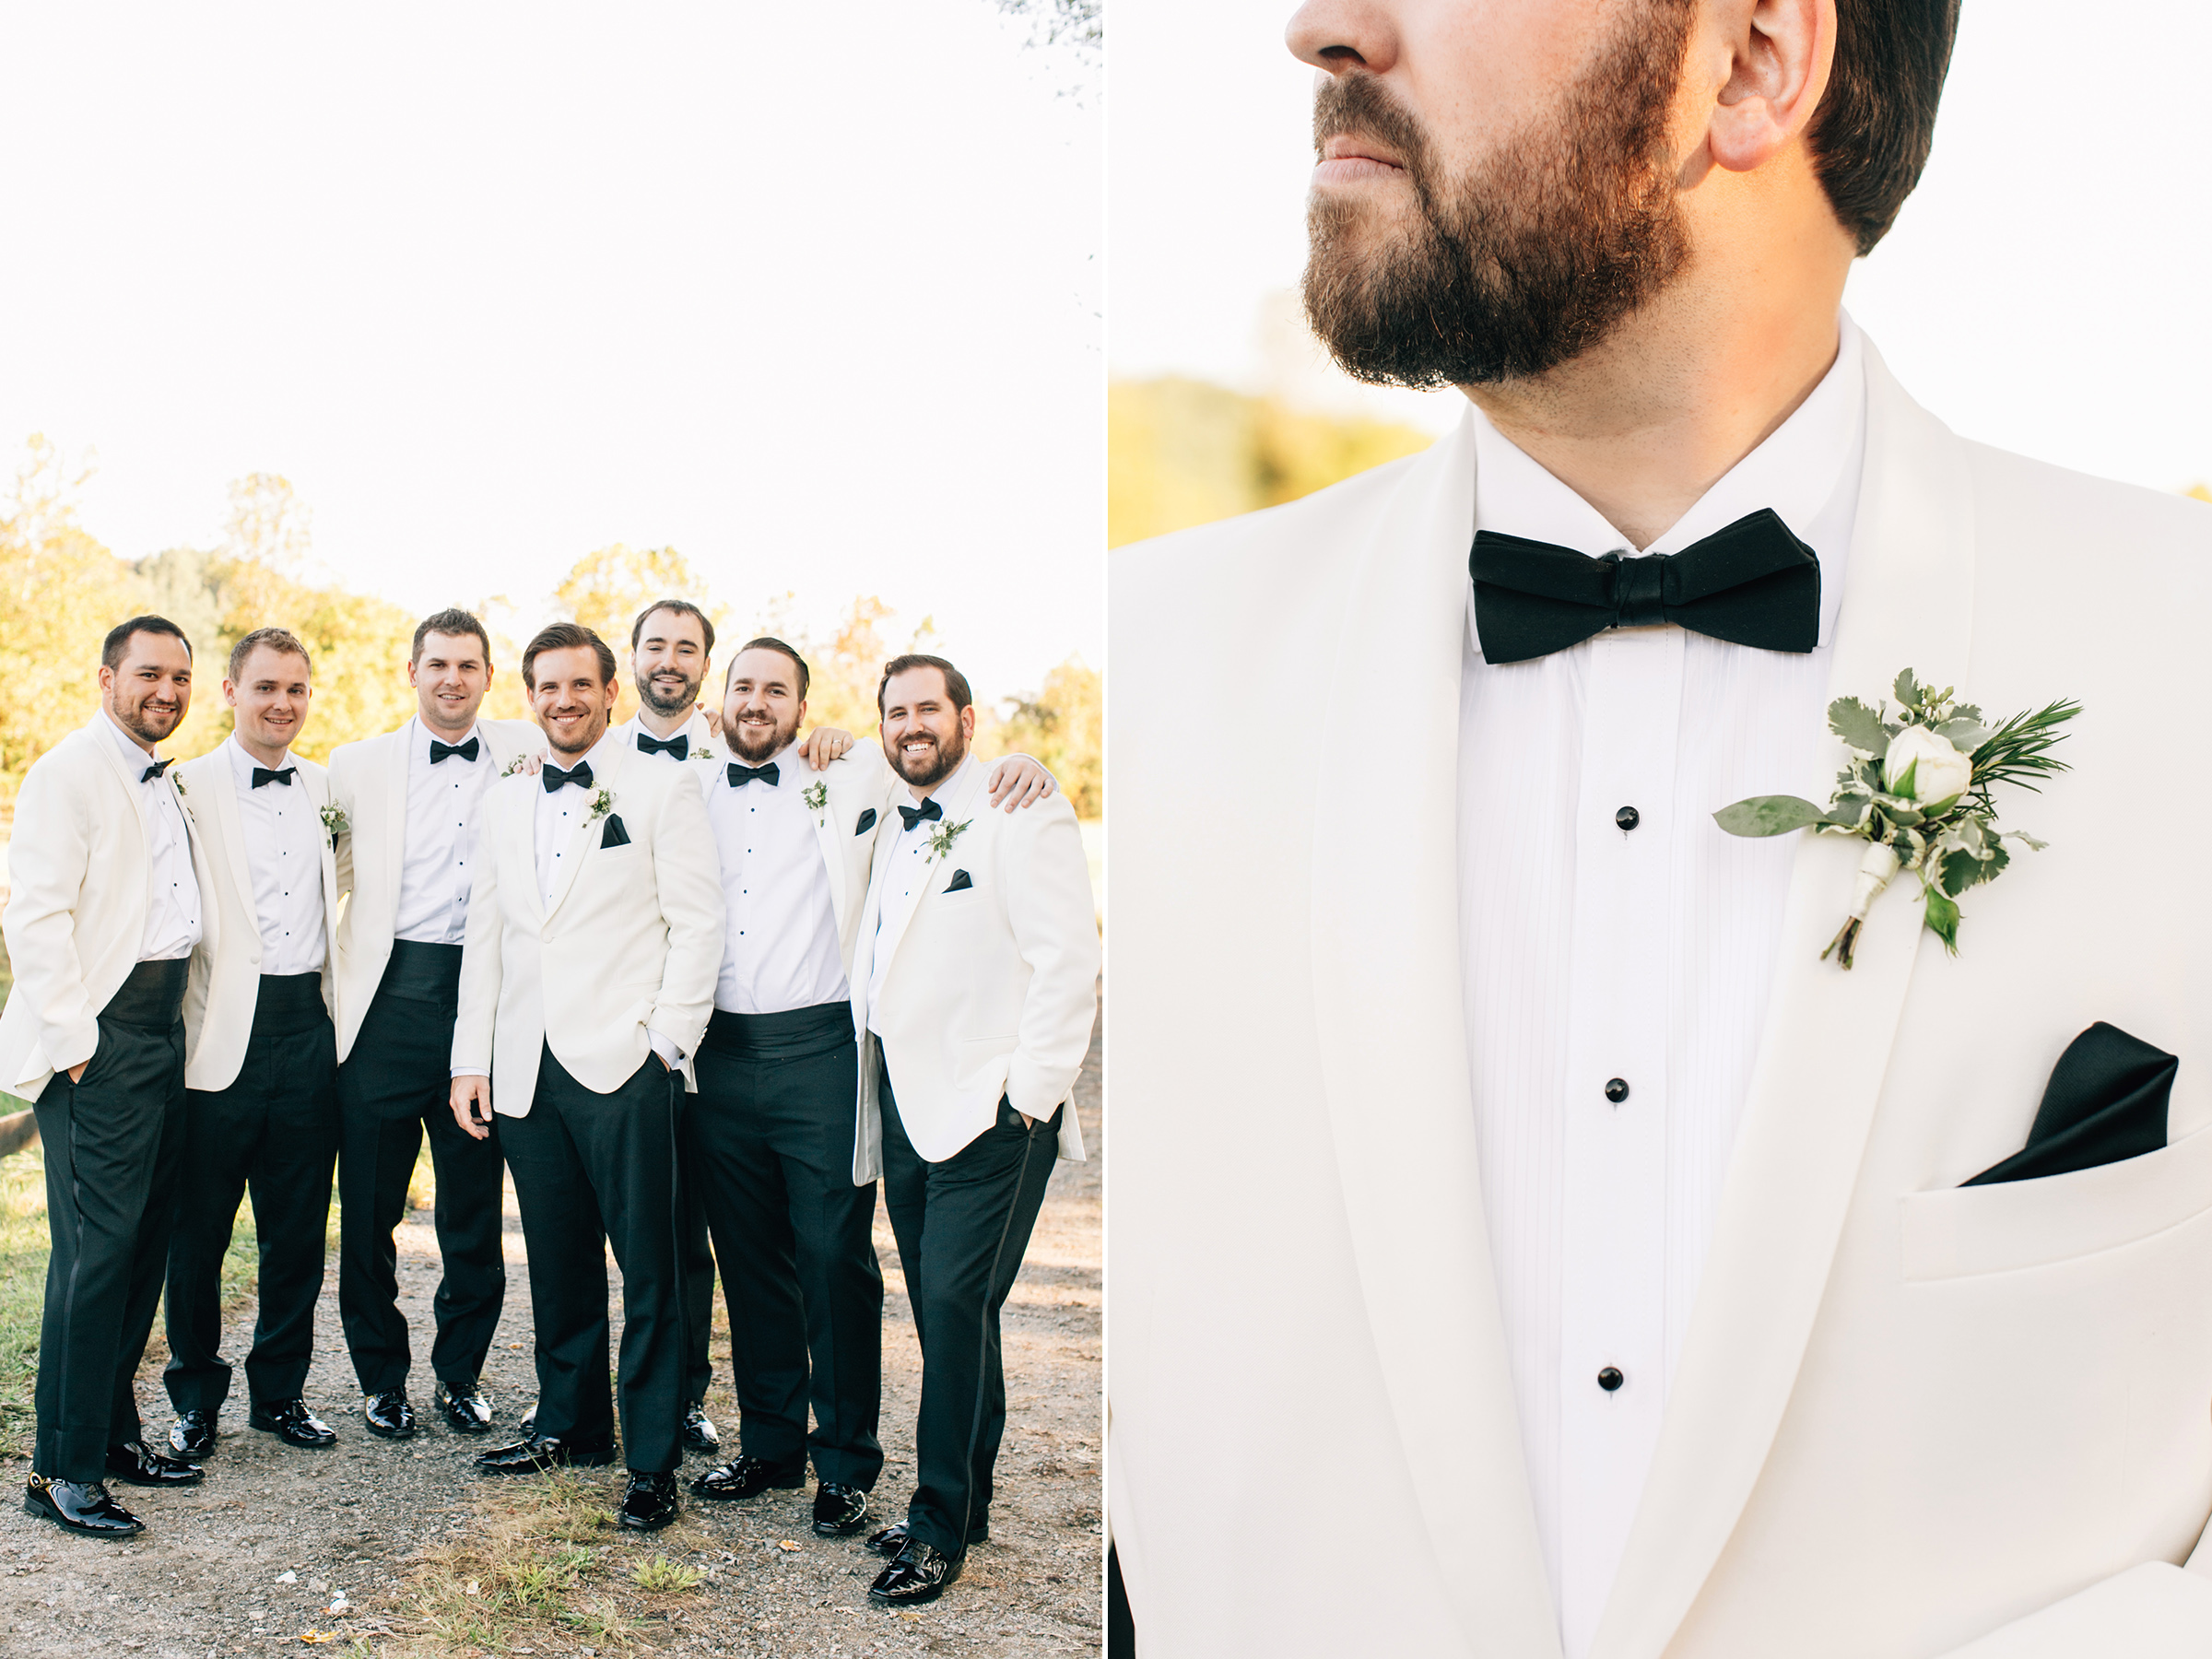 KatieStoopsPhotography-charlottesville wedding-farm wedding26.jpg